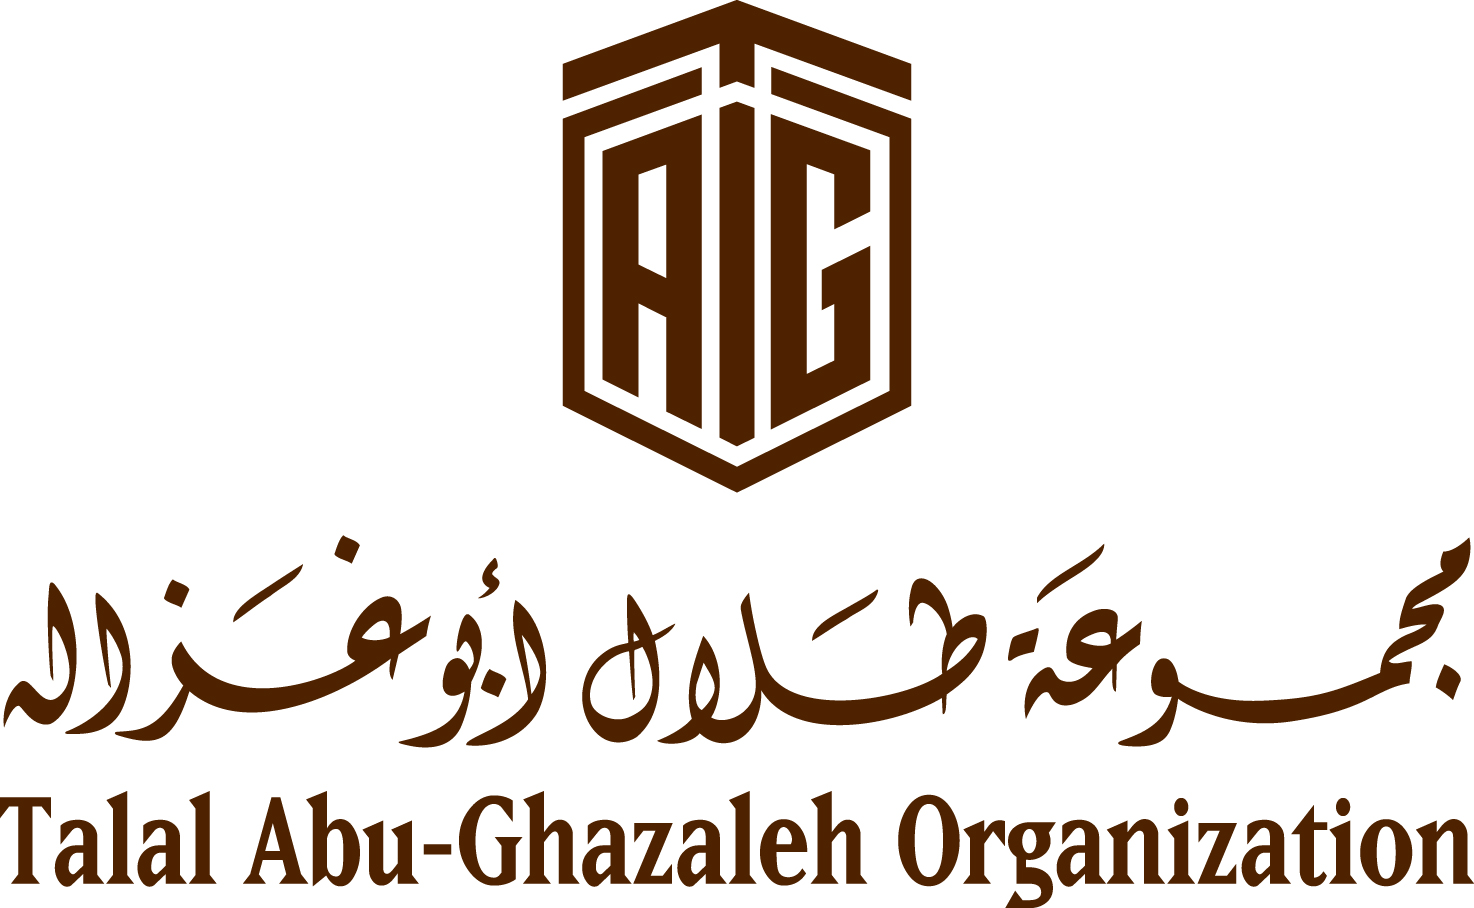 Talal Abu-Ghazaleh Organization Opens its 81st Office in Istanbul